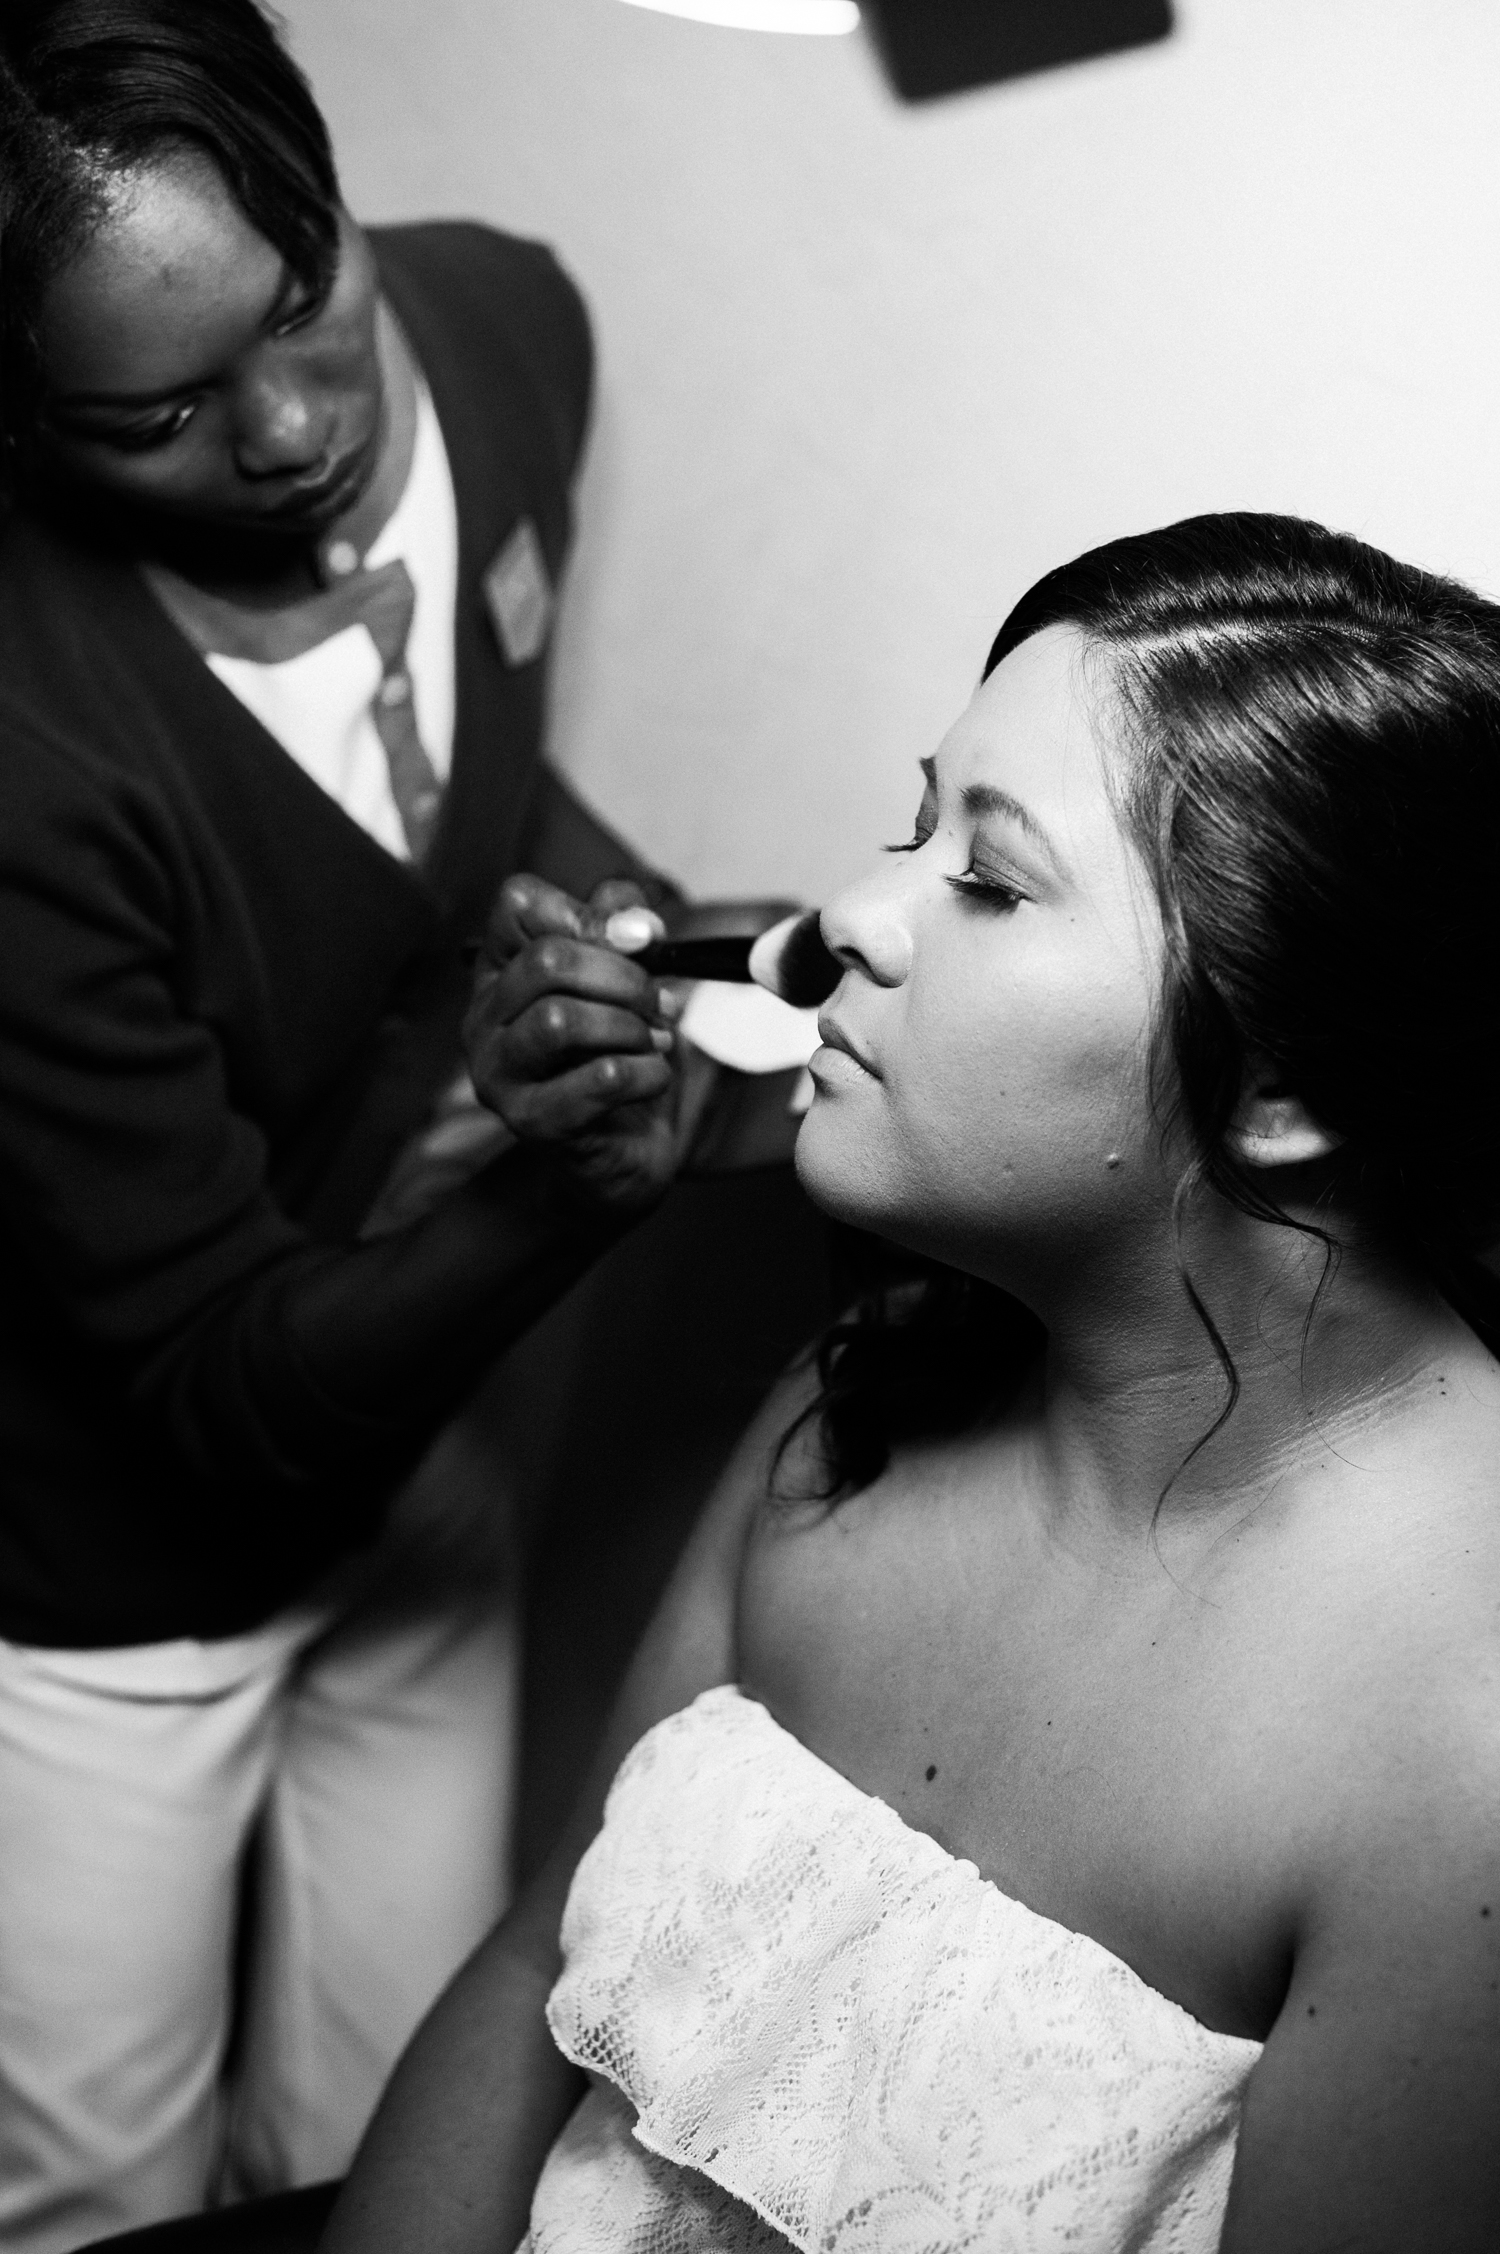 JadeandRyan-Montego-Bay-Jamaica-Wedding-Iberostar-Resort-Beach-4.jpg